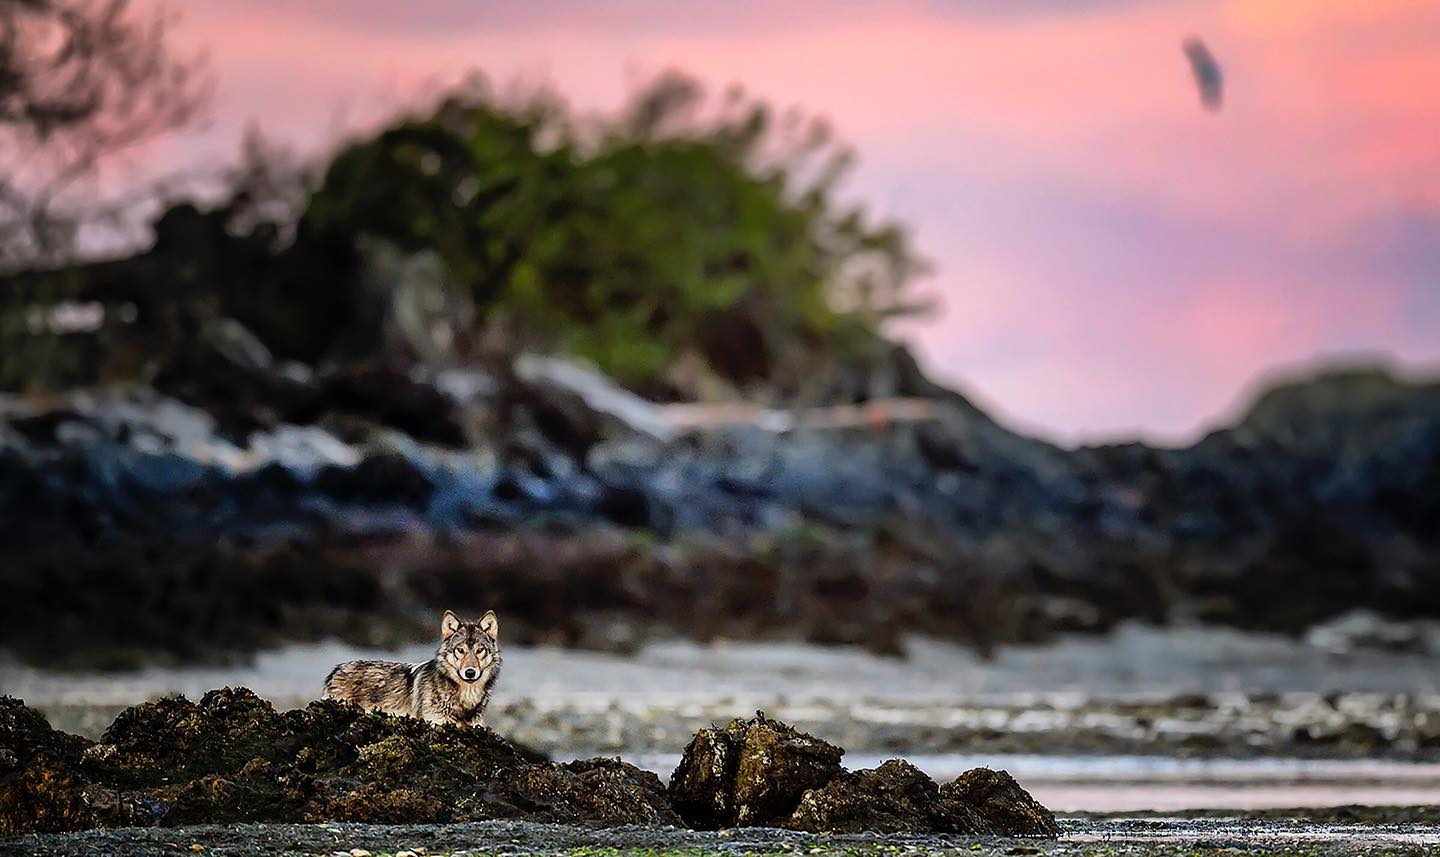 Lone wolf Takaya, a medium sized tan coloured wolf peeks out head and back from behind a rocky outcrop. Behind her, is silver grey ocean waves coming into shore and another taller rocky outcrop and a partially silhouetted tree with a pink and purple sunset visible in the sky.